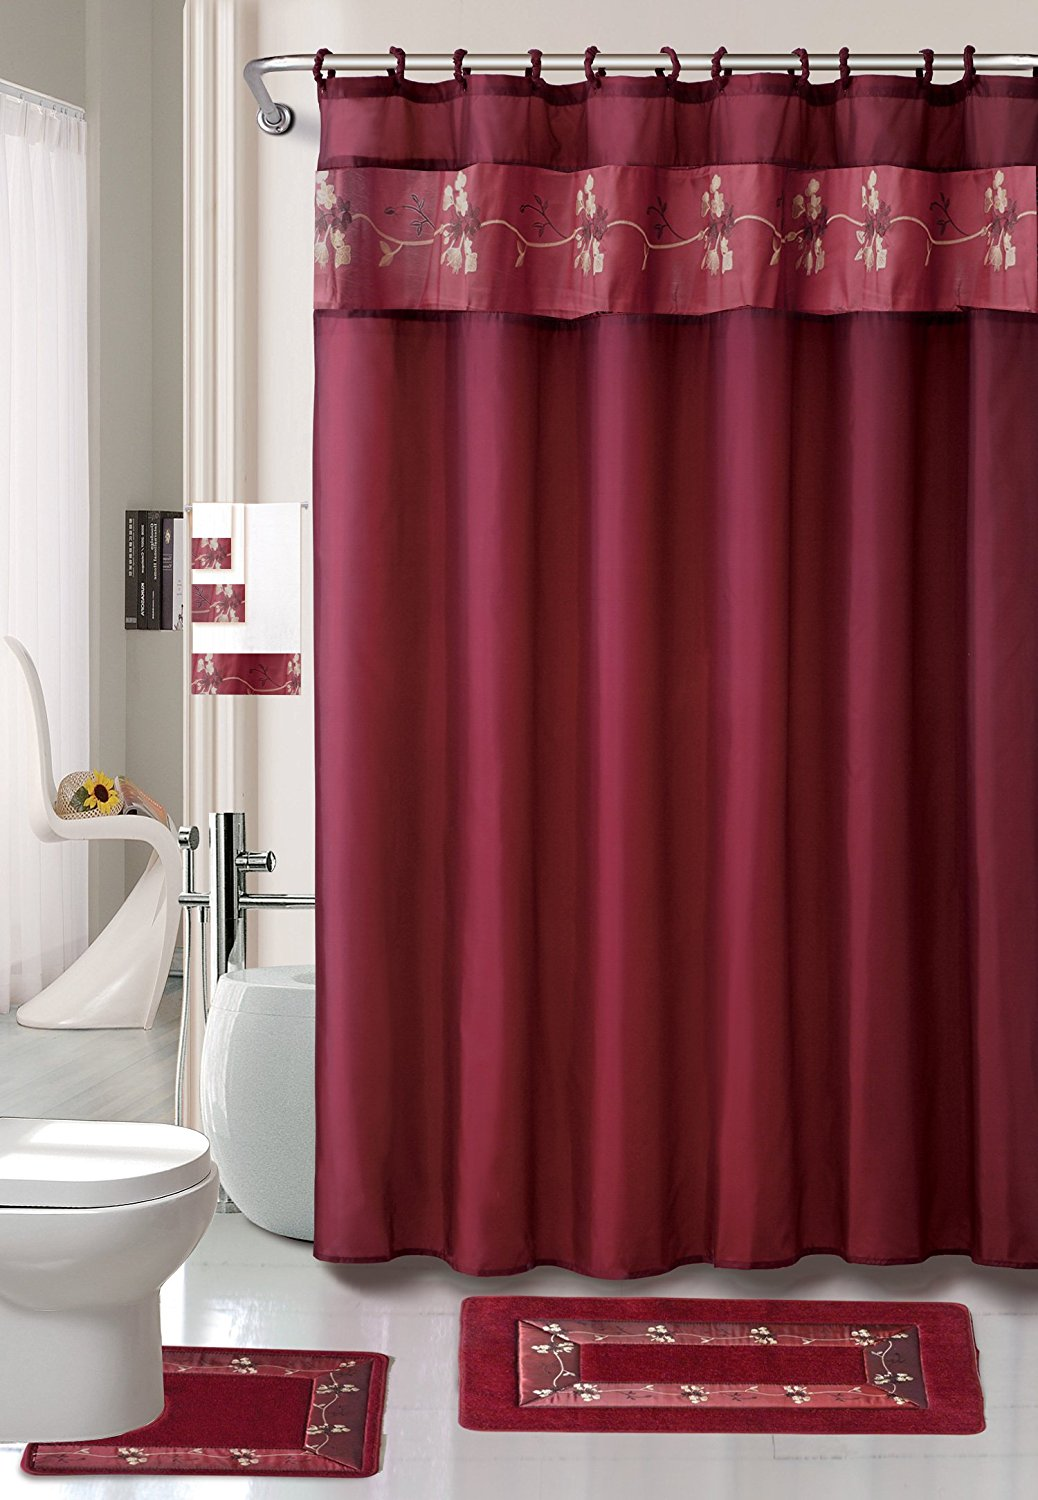 22 Piece Bath Accessory Set Burgundy Red Bath Rug Set Shower Curtain Accessories Walmart Com Walmart Com